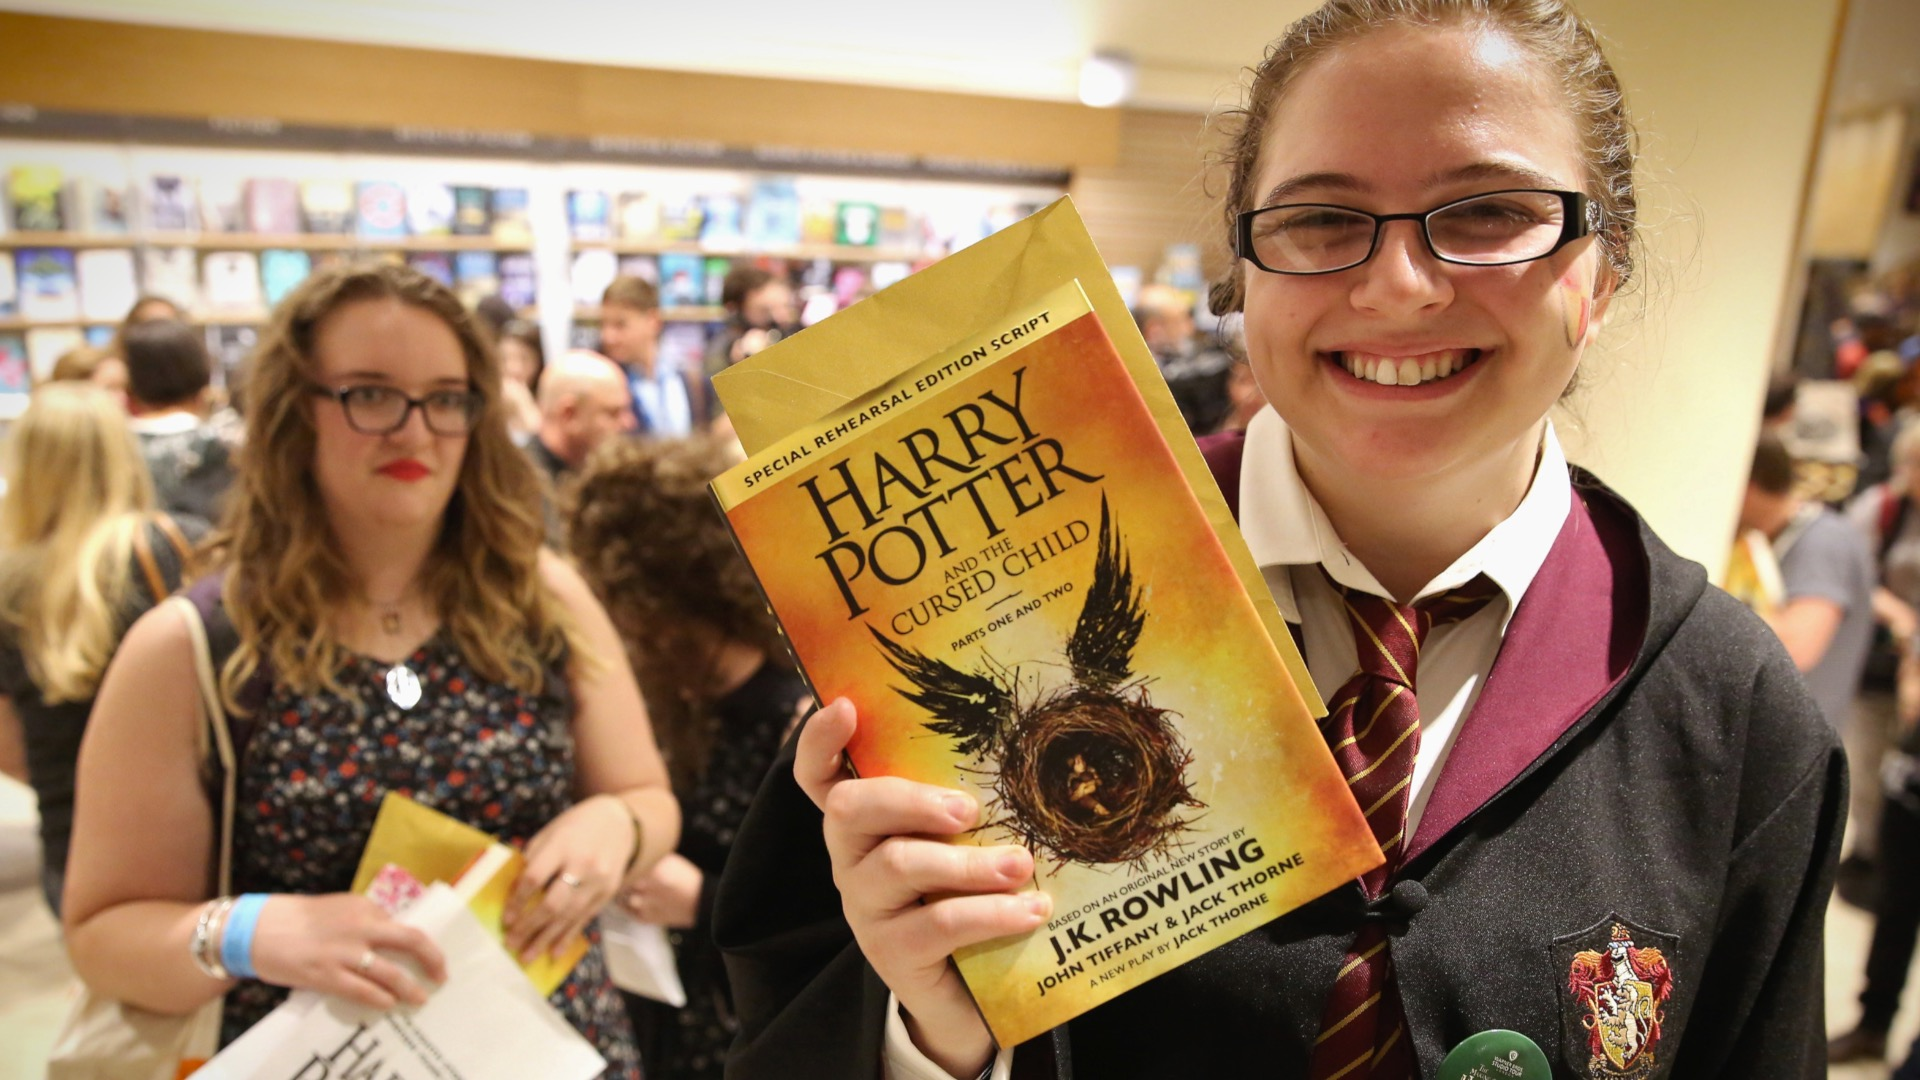 Pottermania: eager Harry Potter fans snap up Cursed Child at midnight